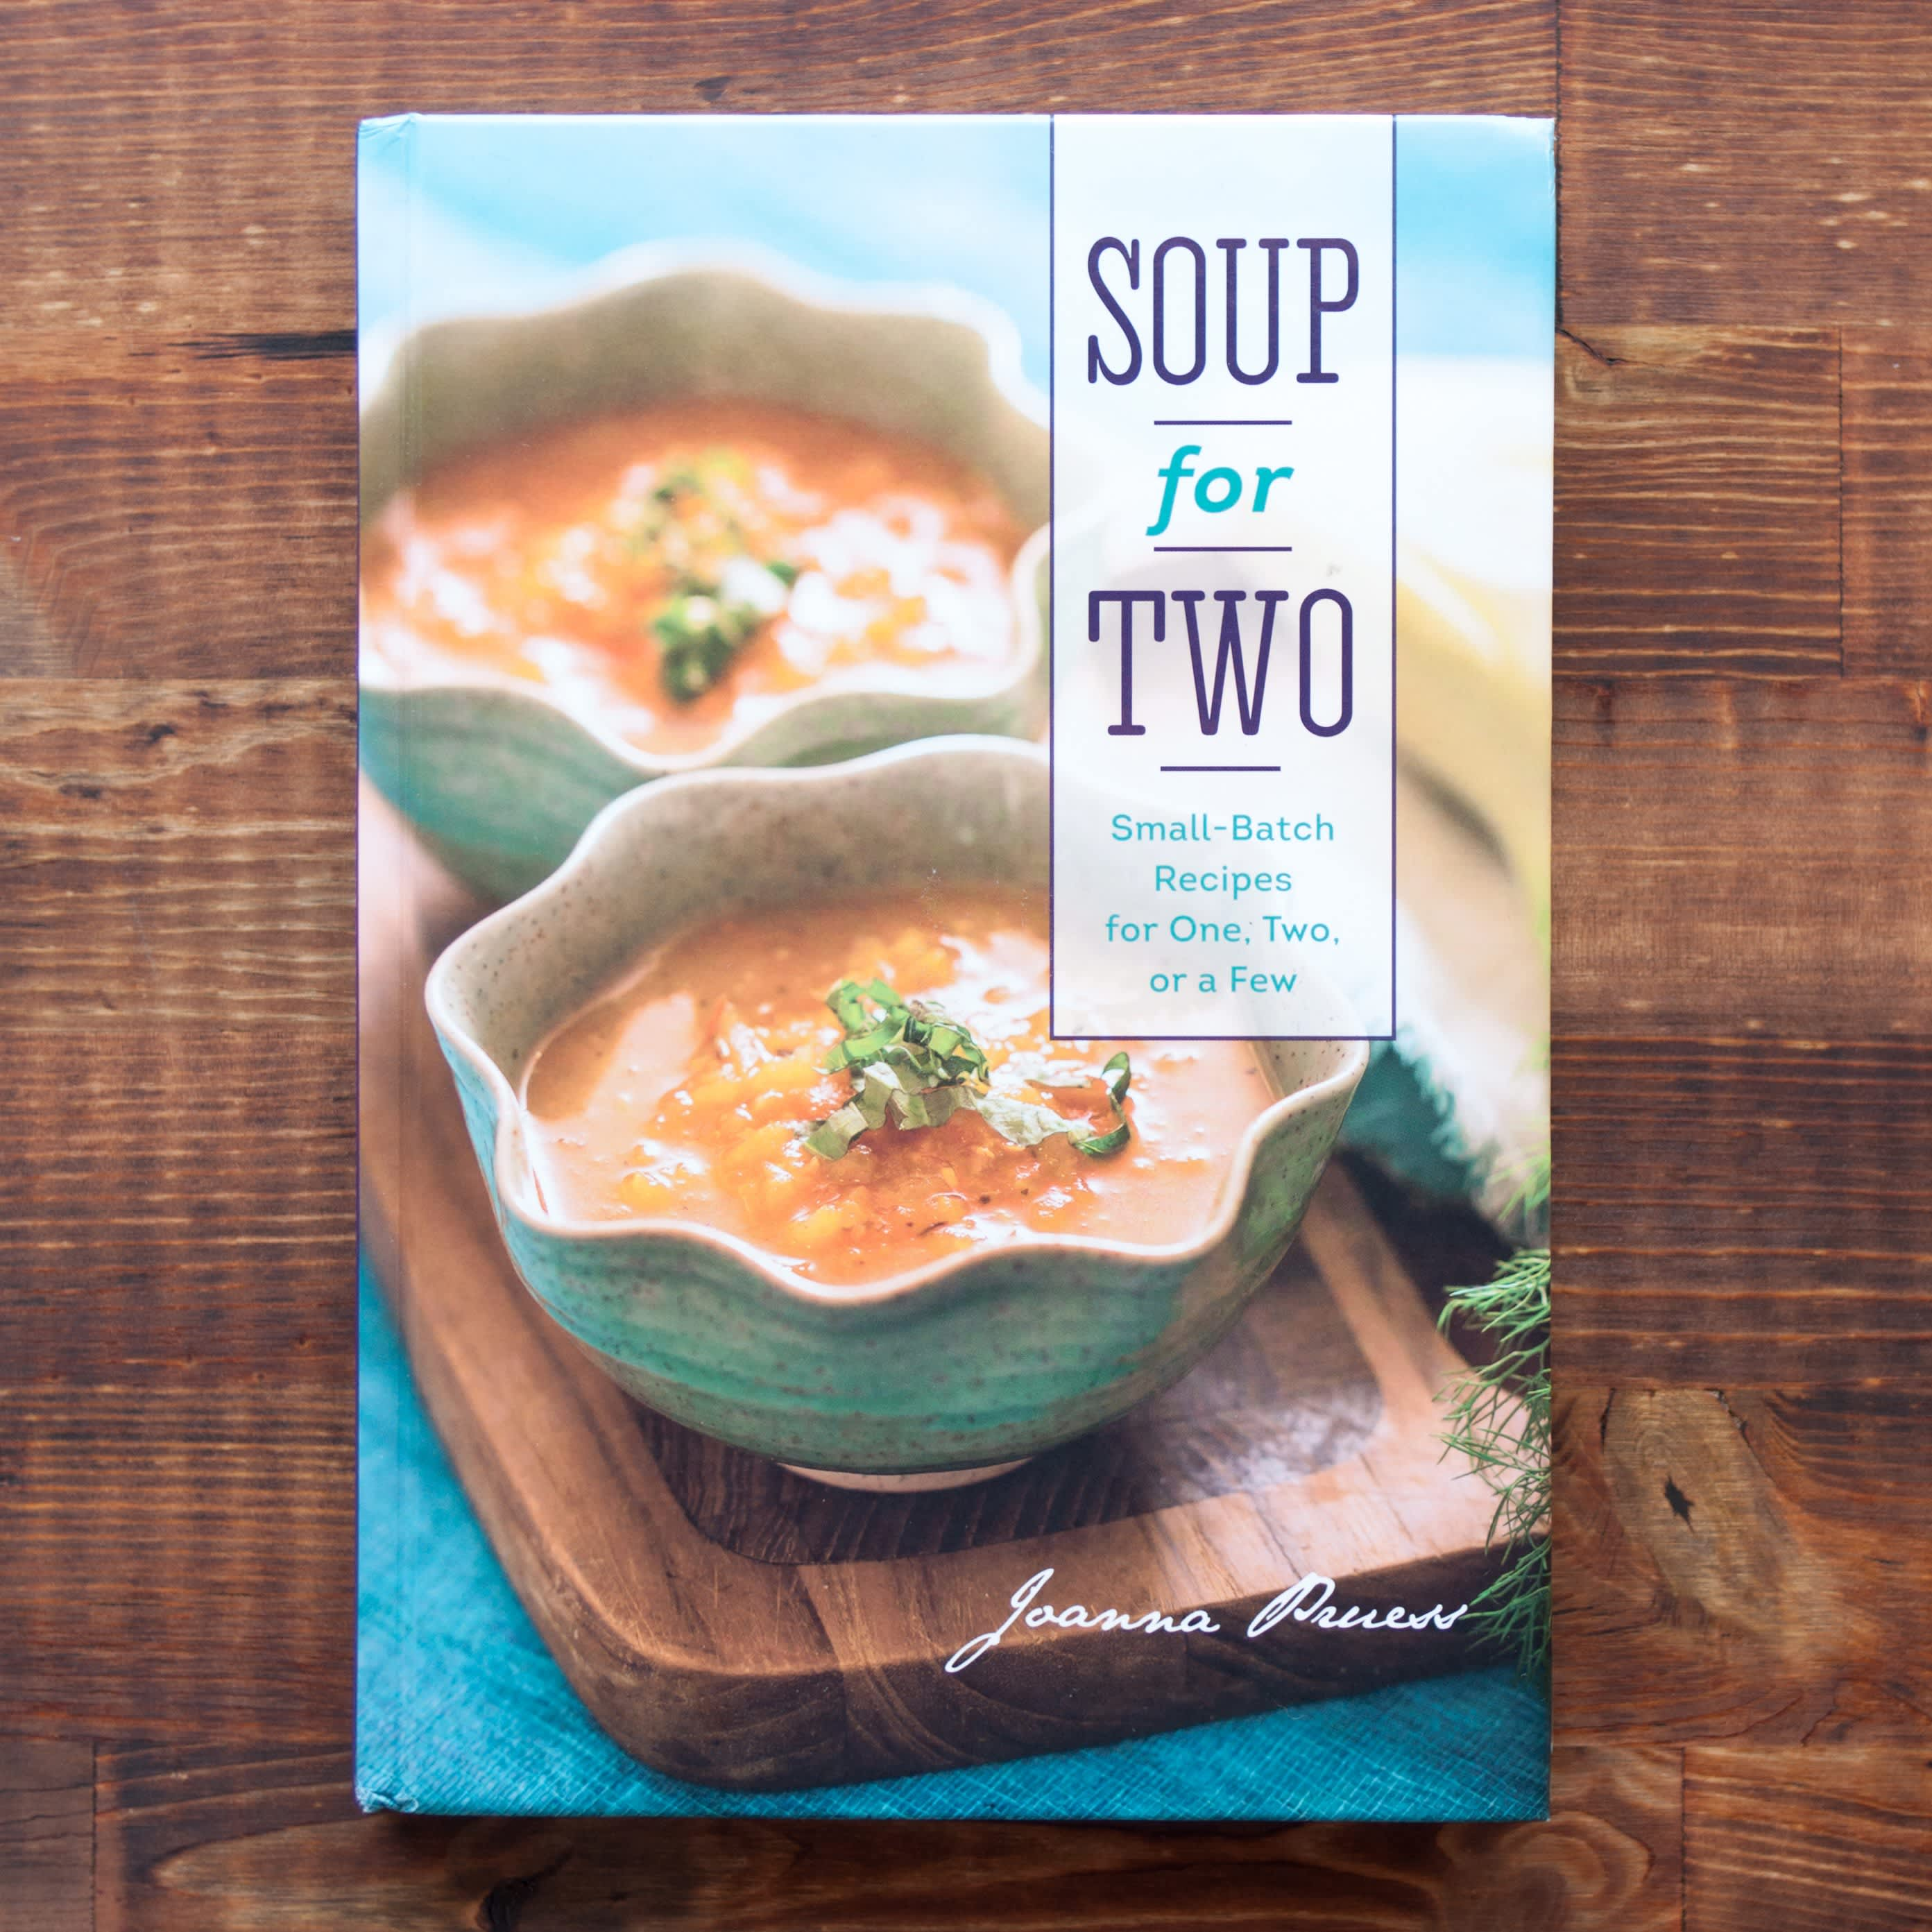 This Cookbook Has Downsized Soups Perfectly for Small Households!: gallery image 1